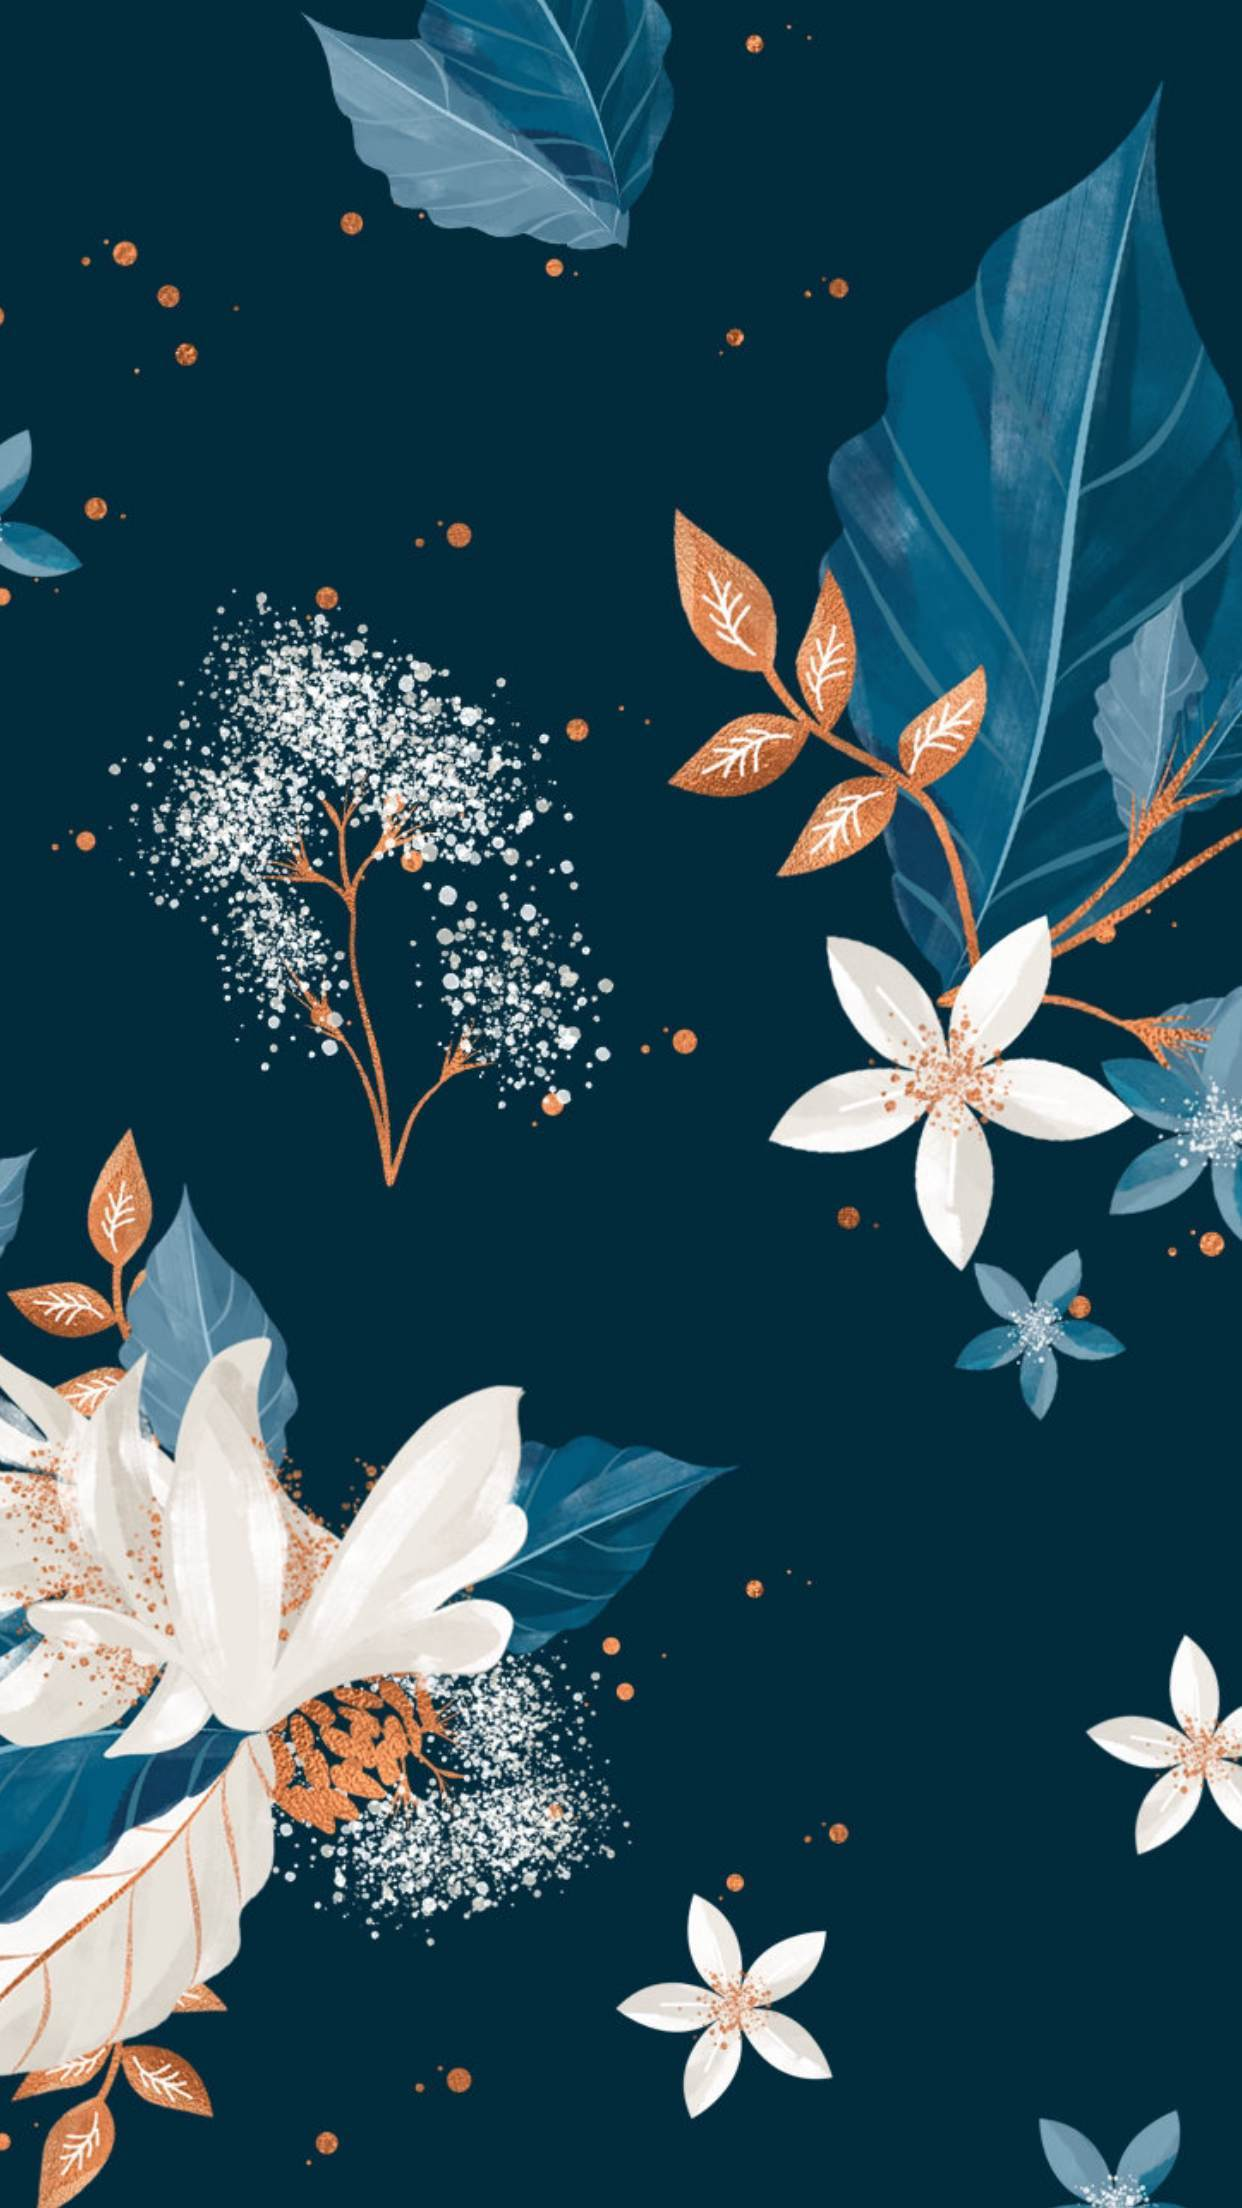 Floral Wallpaper Floral Wallpapers Floral Wallpaper Spring Popular Glitter Wallpaper For Iphone 20508 Hd Wallpaper Backgrounds Download